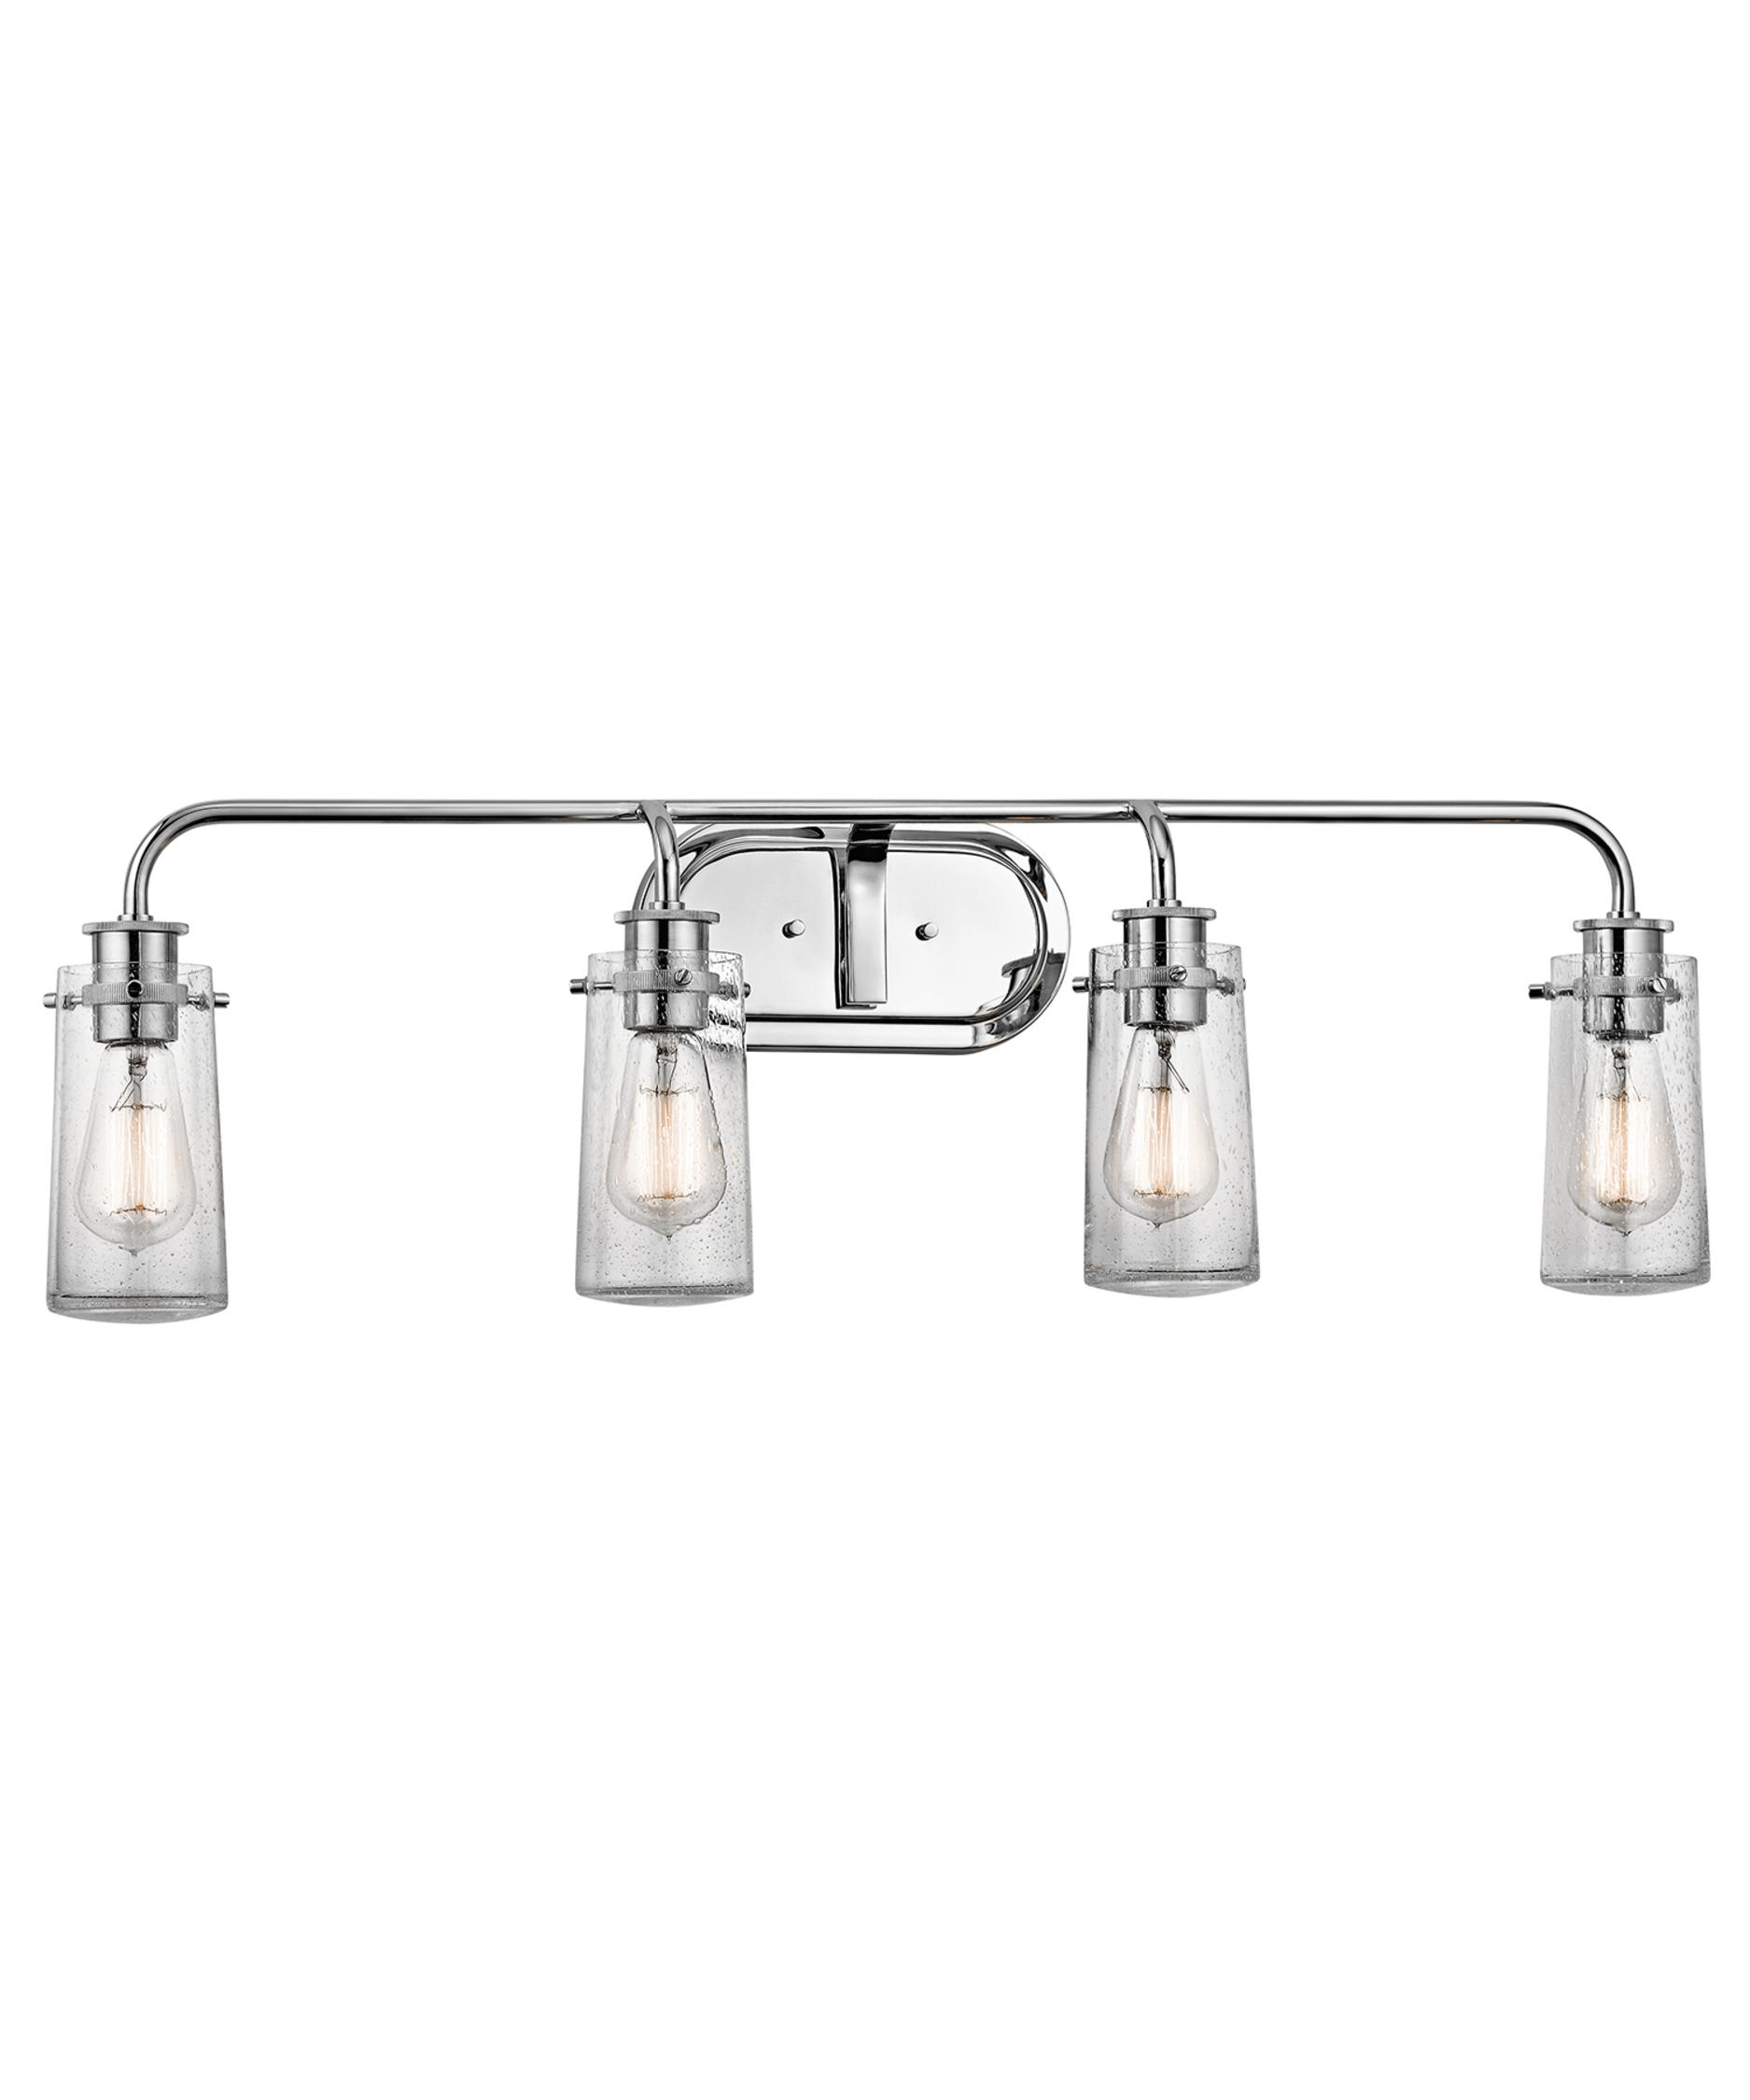 shown in chrome finish and clear seedy glass bathroom vanity lighting 1